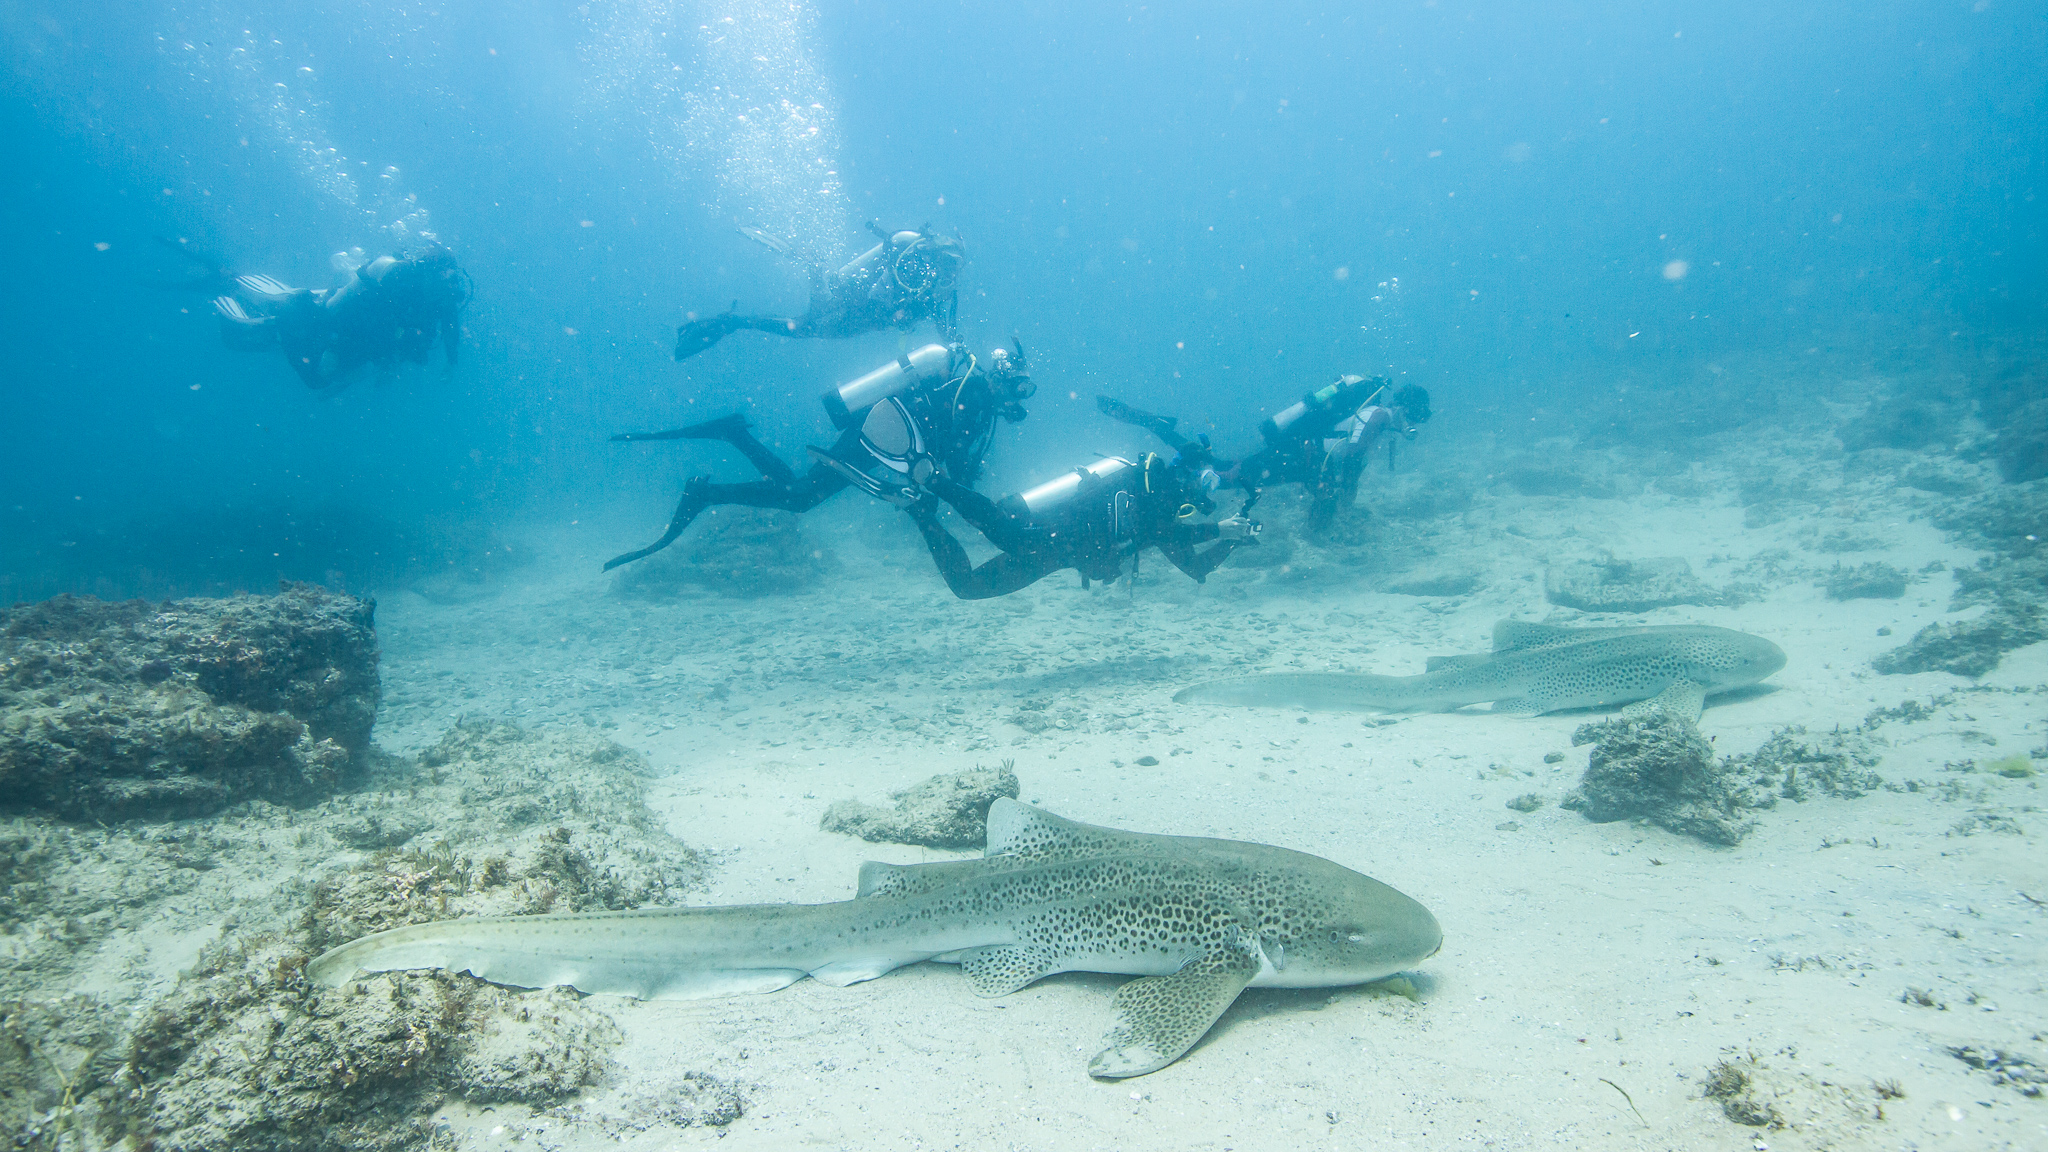 Scuba Diving with Leopard Sharks Stradbroke Island Queensland Australia